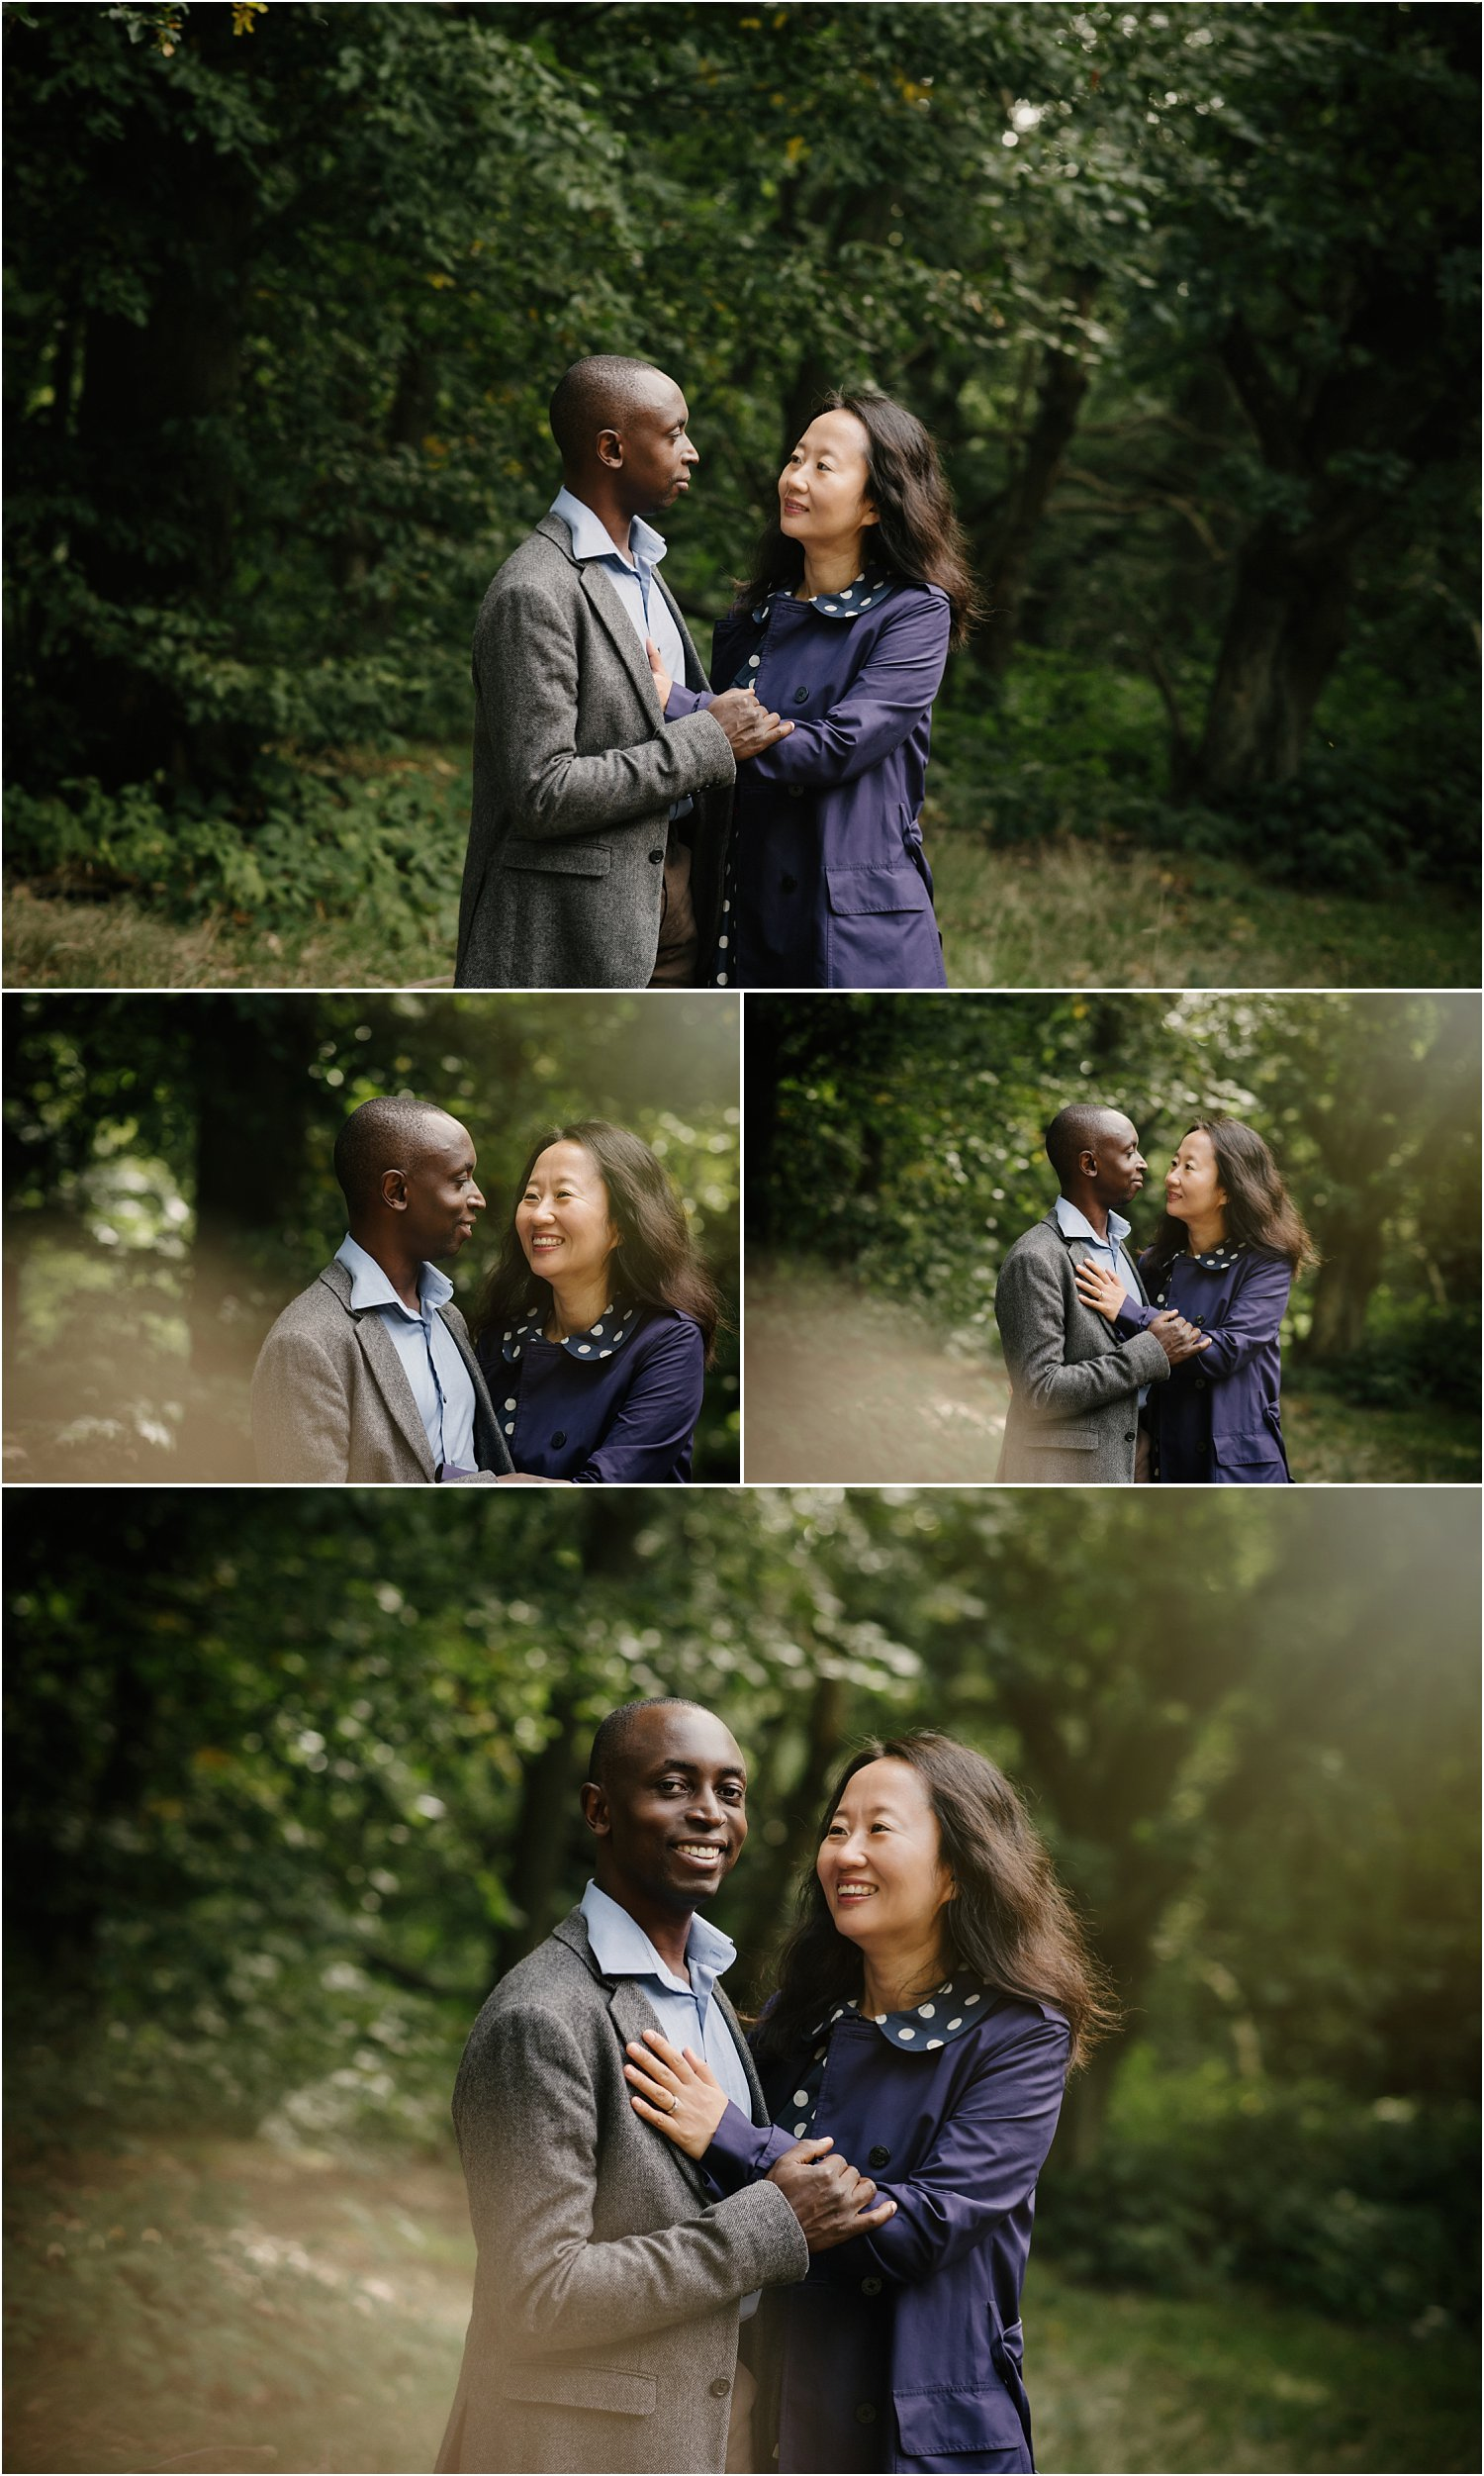 engagement-session-hampstead-heath-london-tindy-bao-lily-sawyer-photo